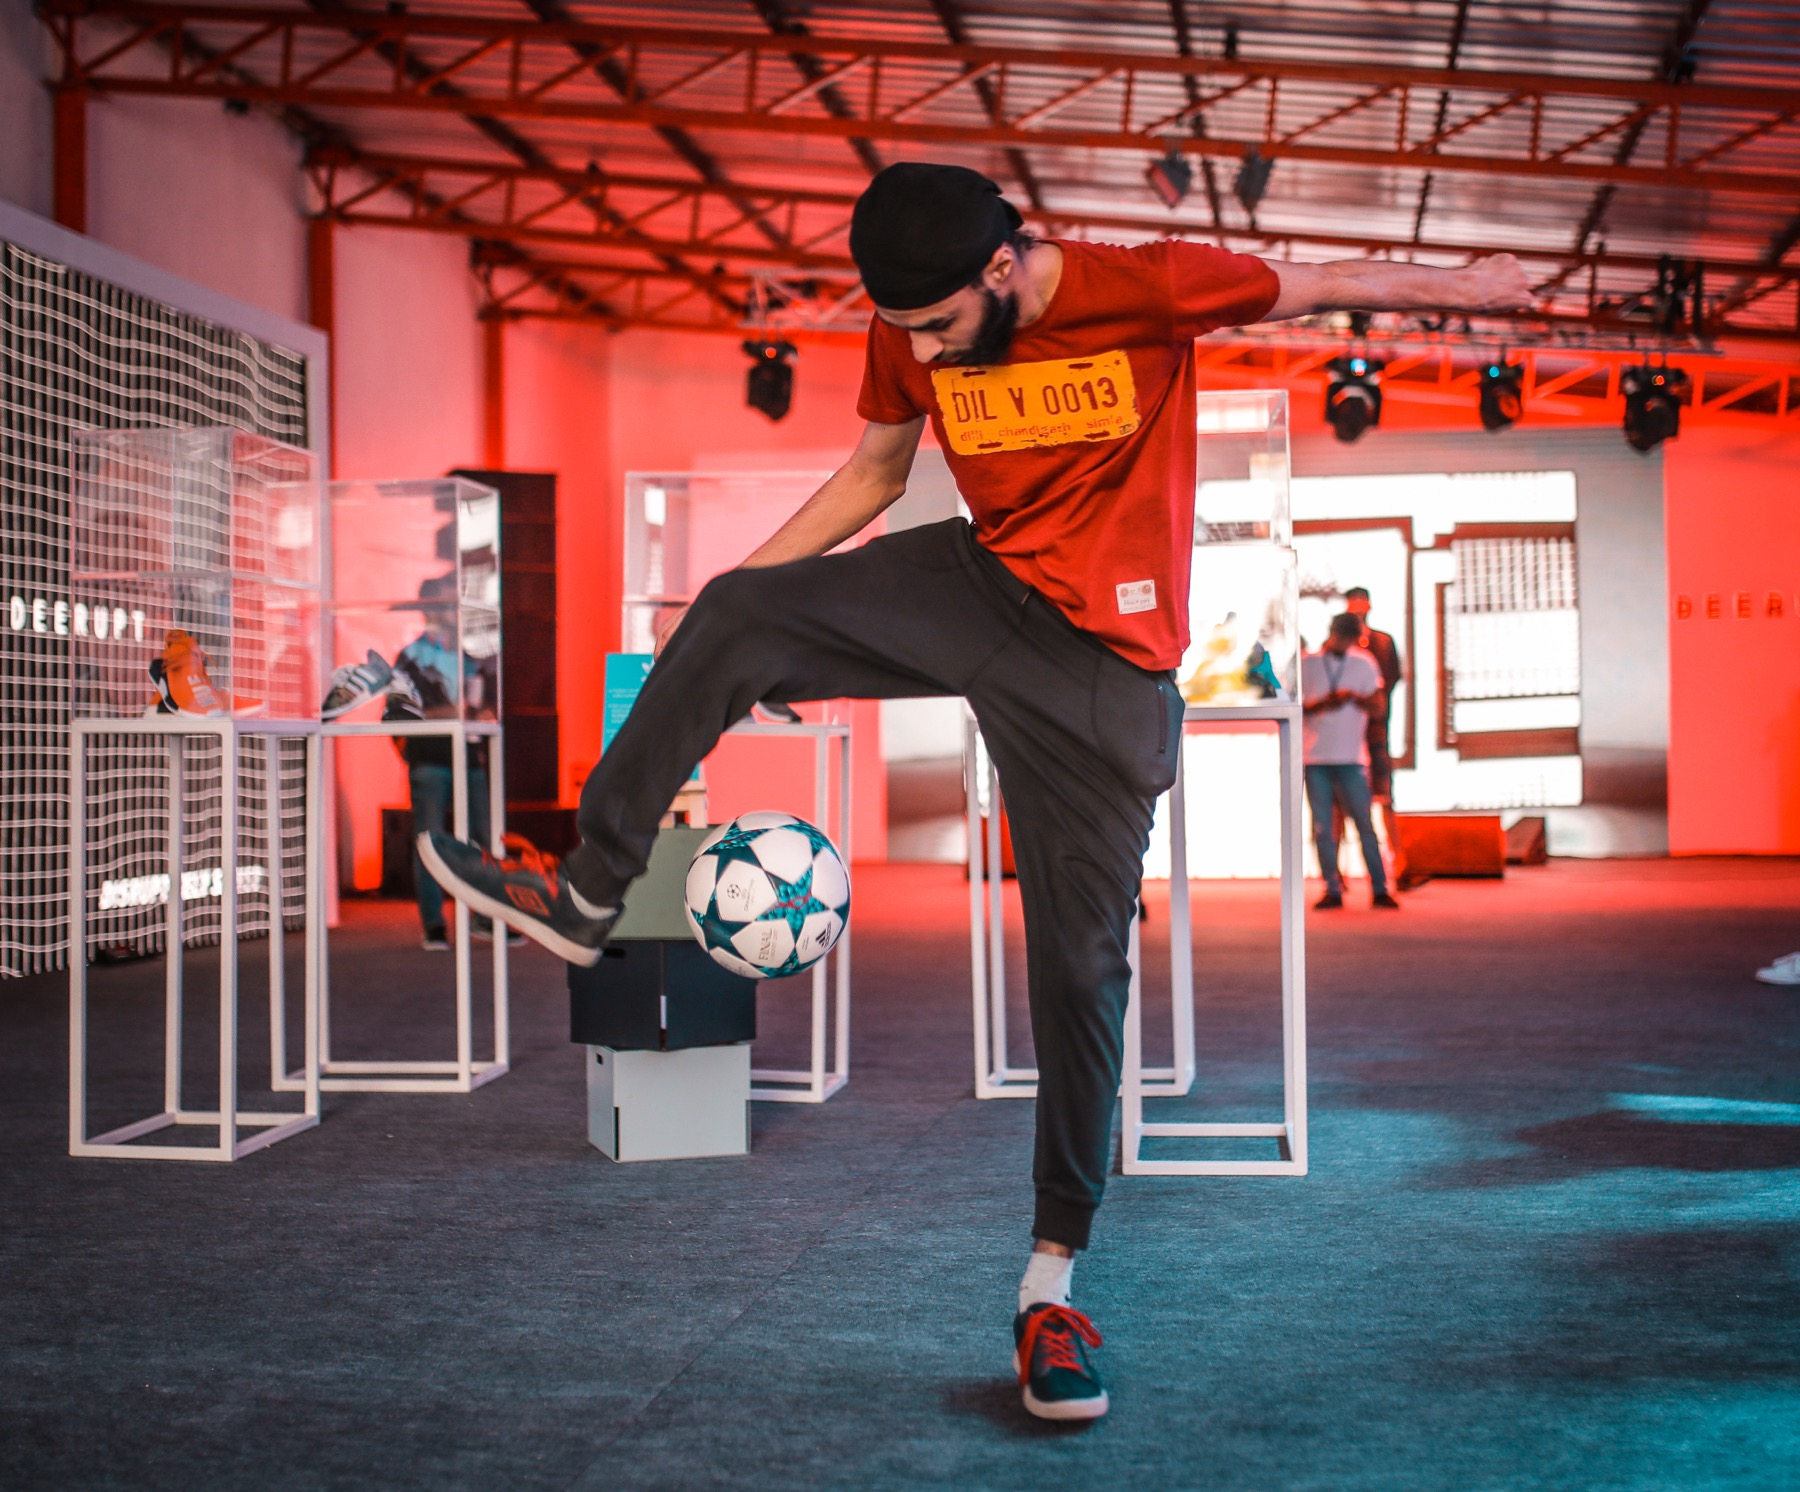 Homegrown India presents HGStreet in Mumbai on March 18, 2018, a celebration of sneaker and street culture - launch of adidas Deerupt by adidas Originals at the Deerupt Experience976A5627.jpg